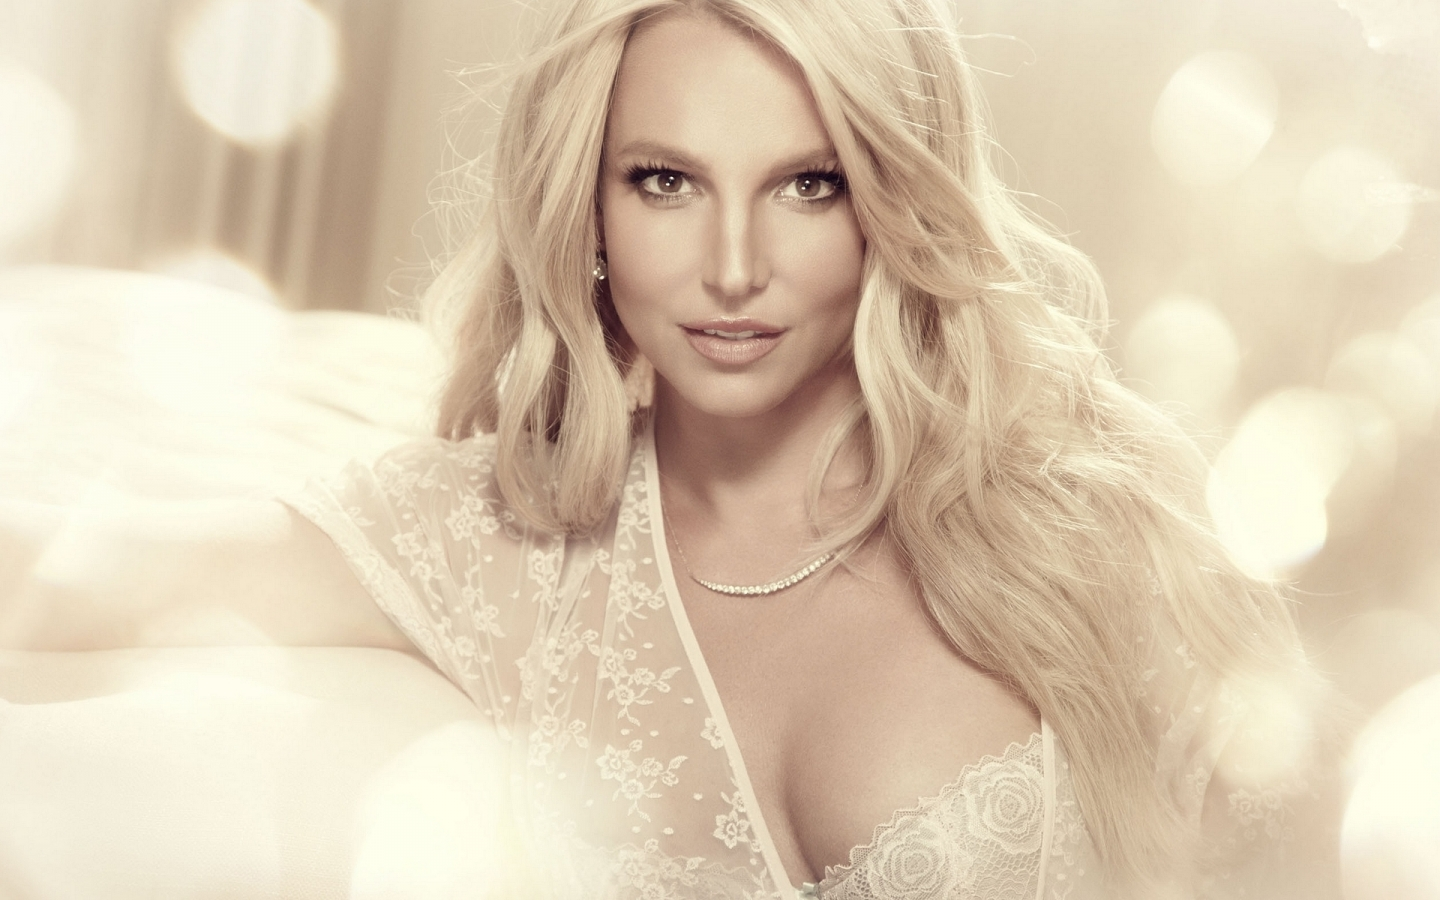 Britney Spears Glamouros for 1440 x 900 widescreen resolution